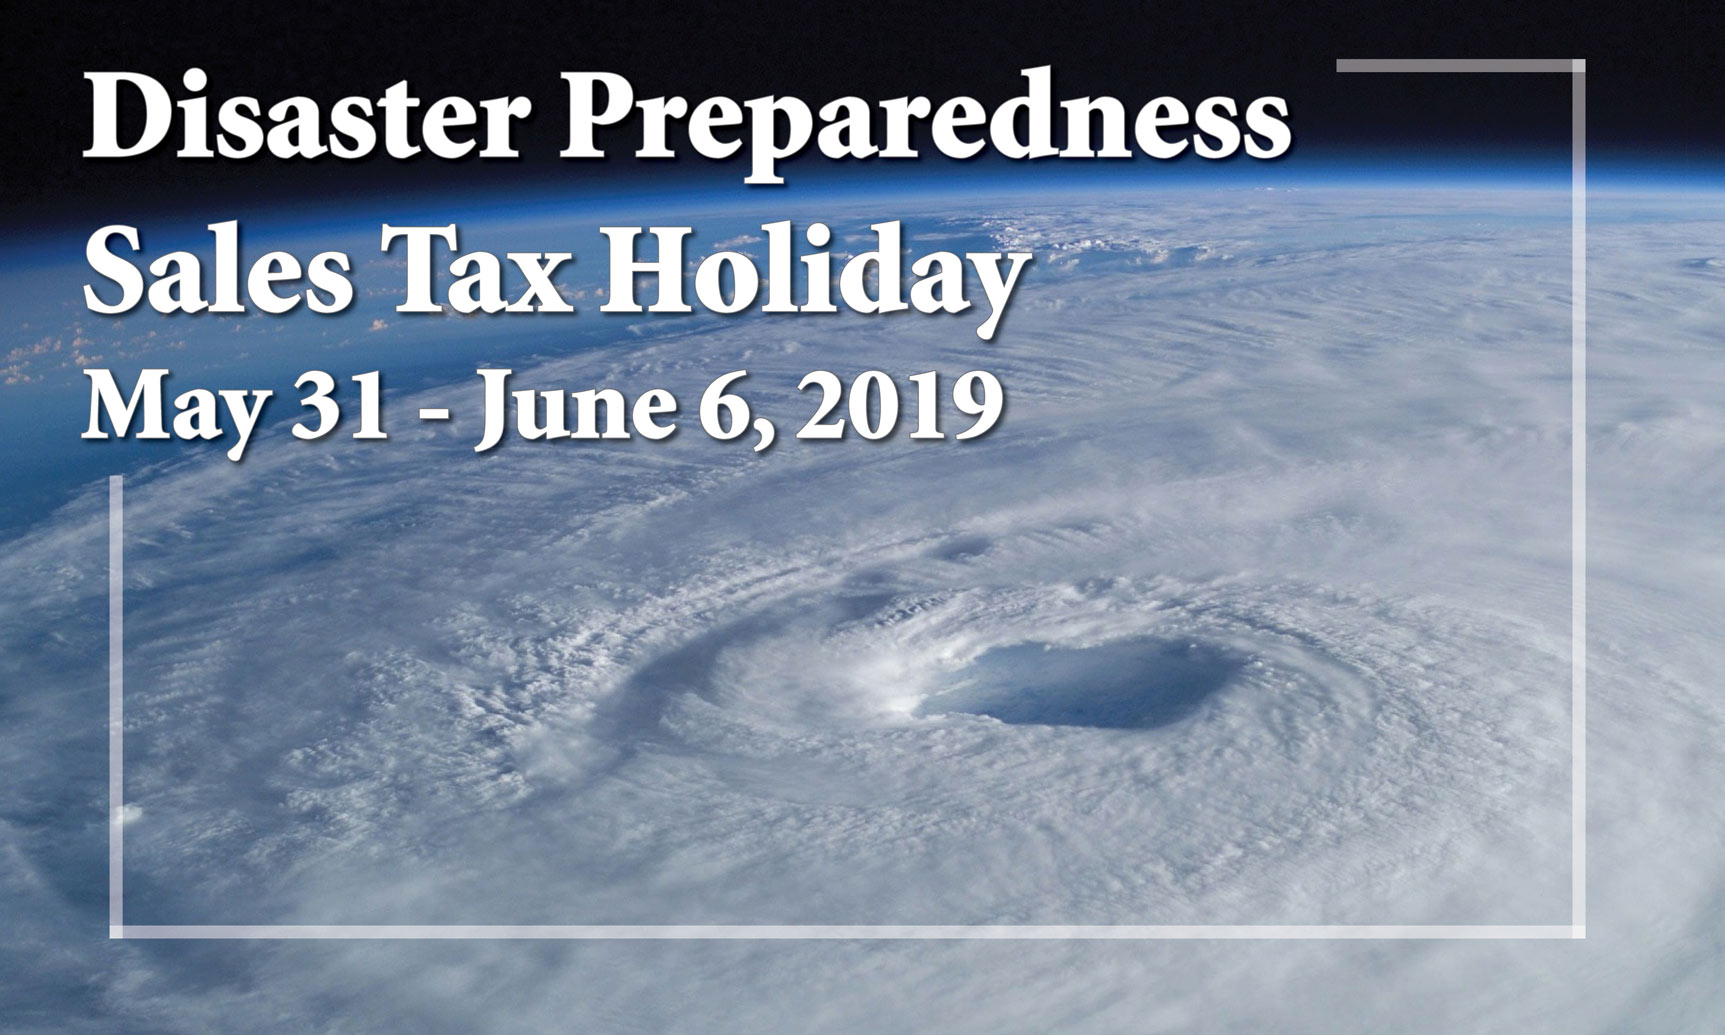 2019 Florida Disaster Preparedness Tax Holiday